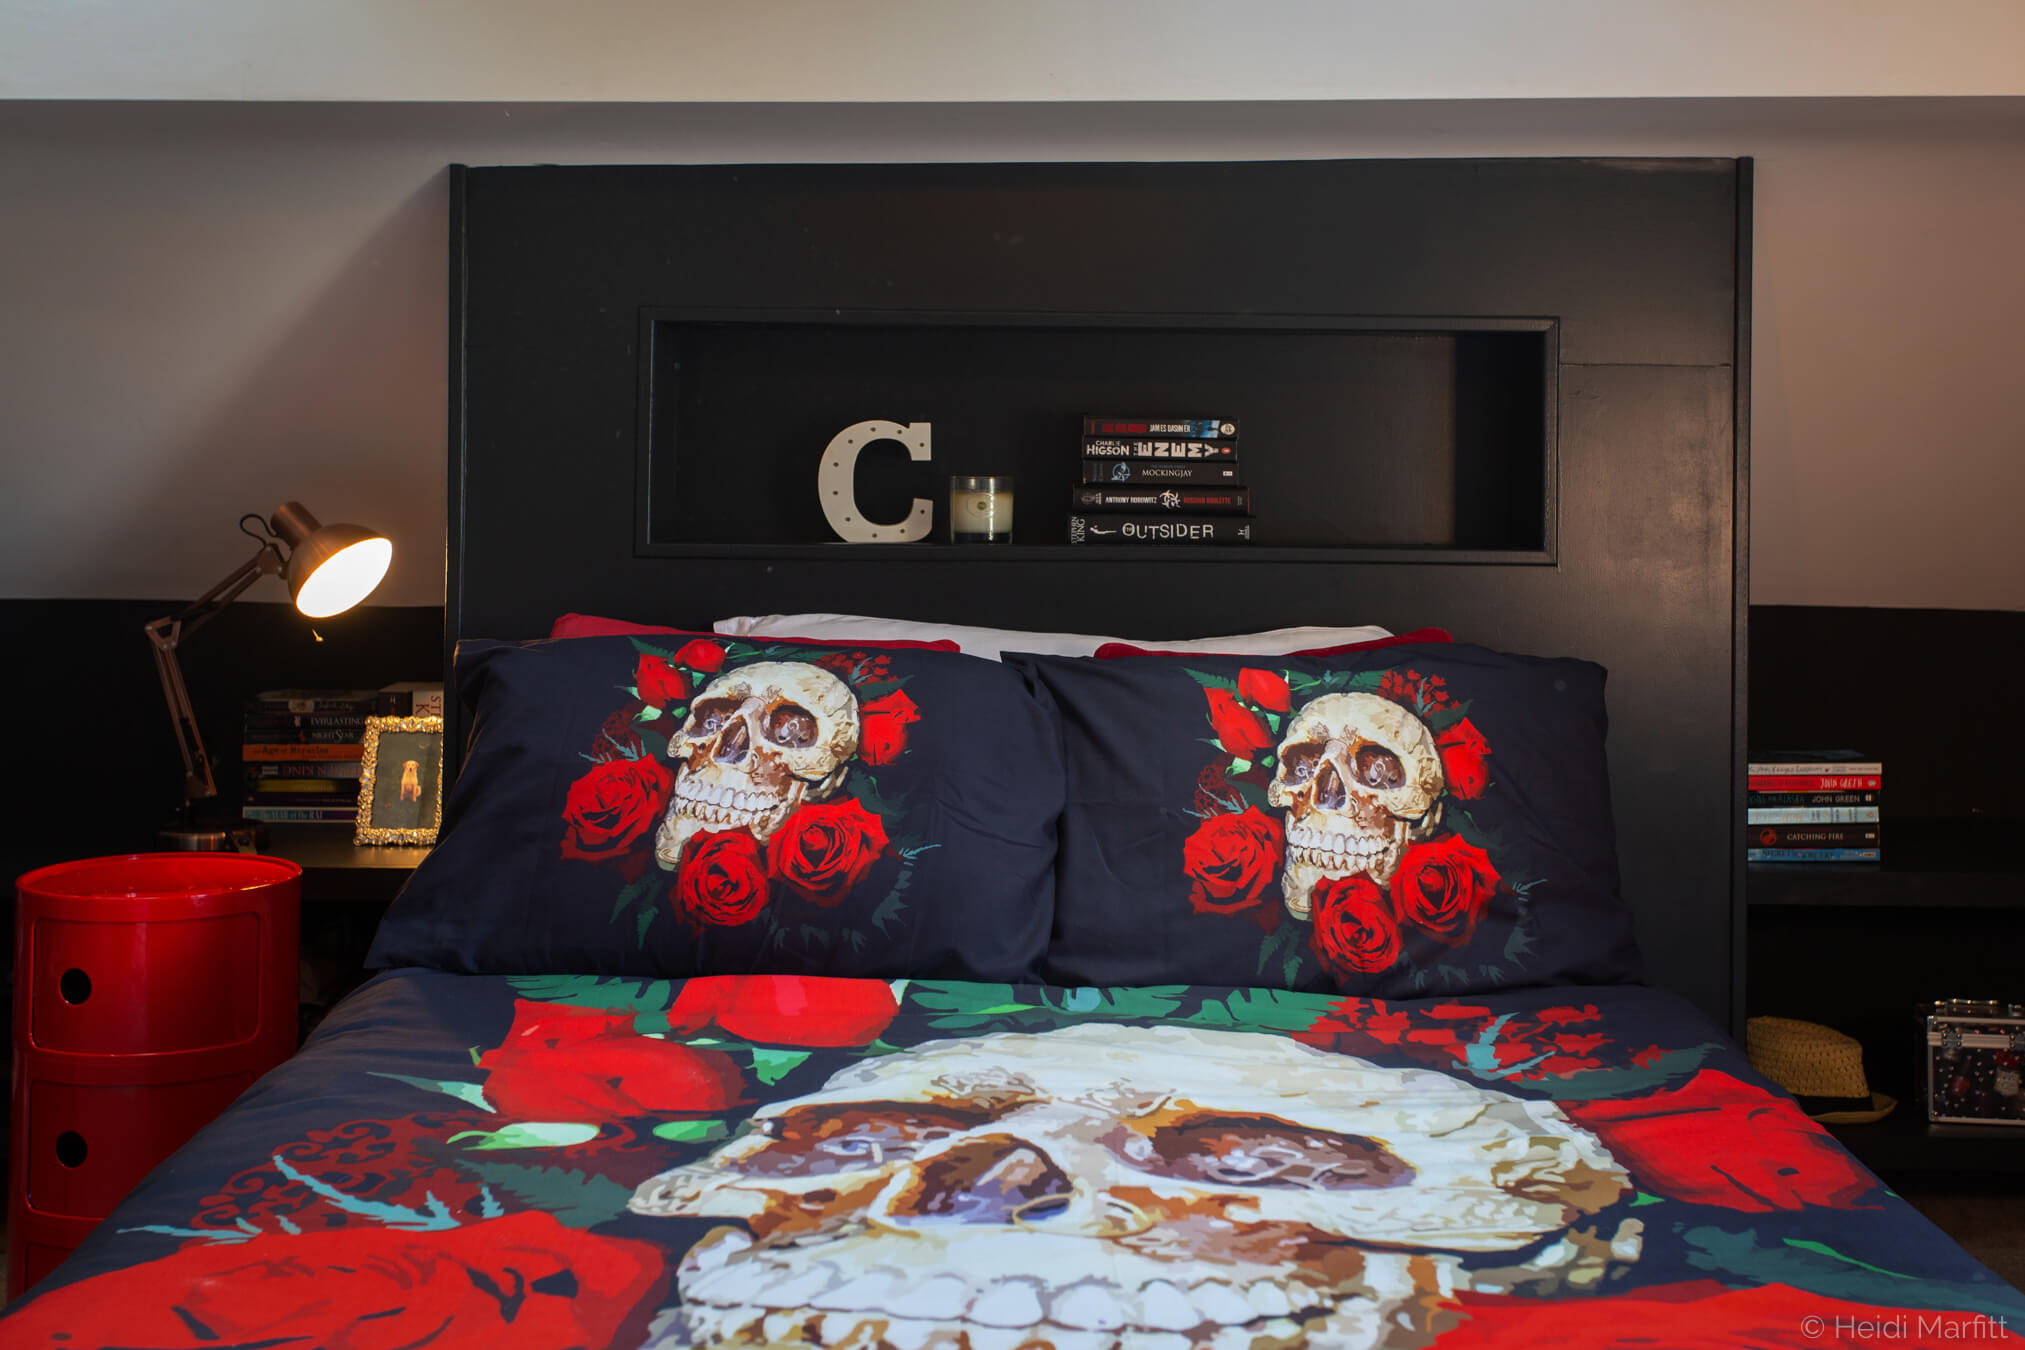 A niche in the headboard is a perfect spot for bedtime reads